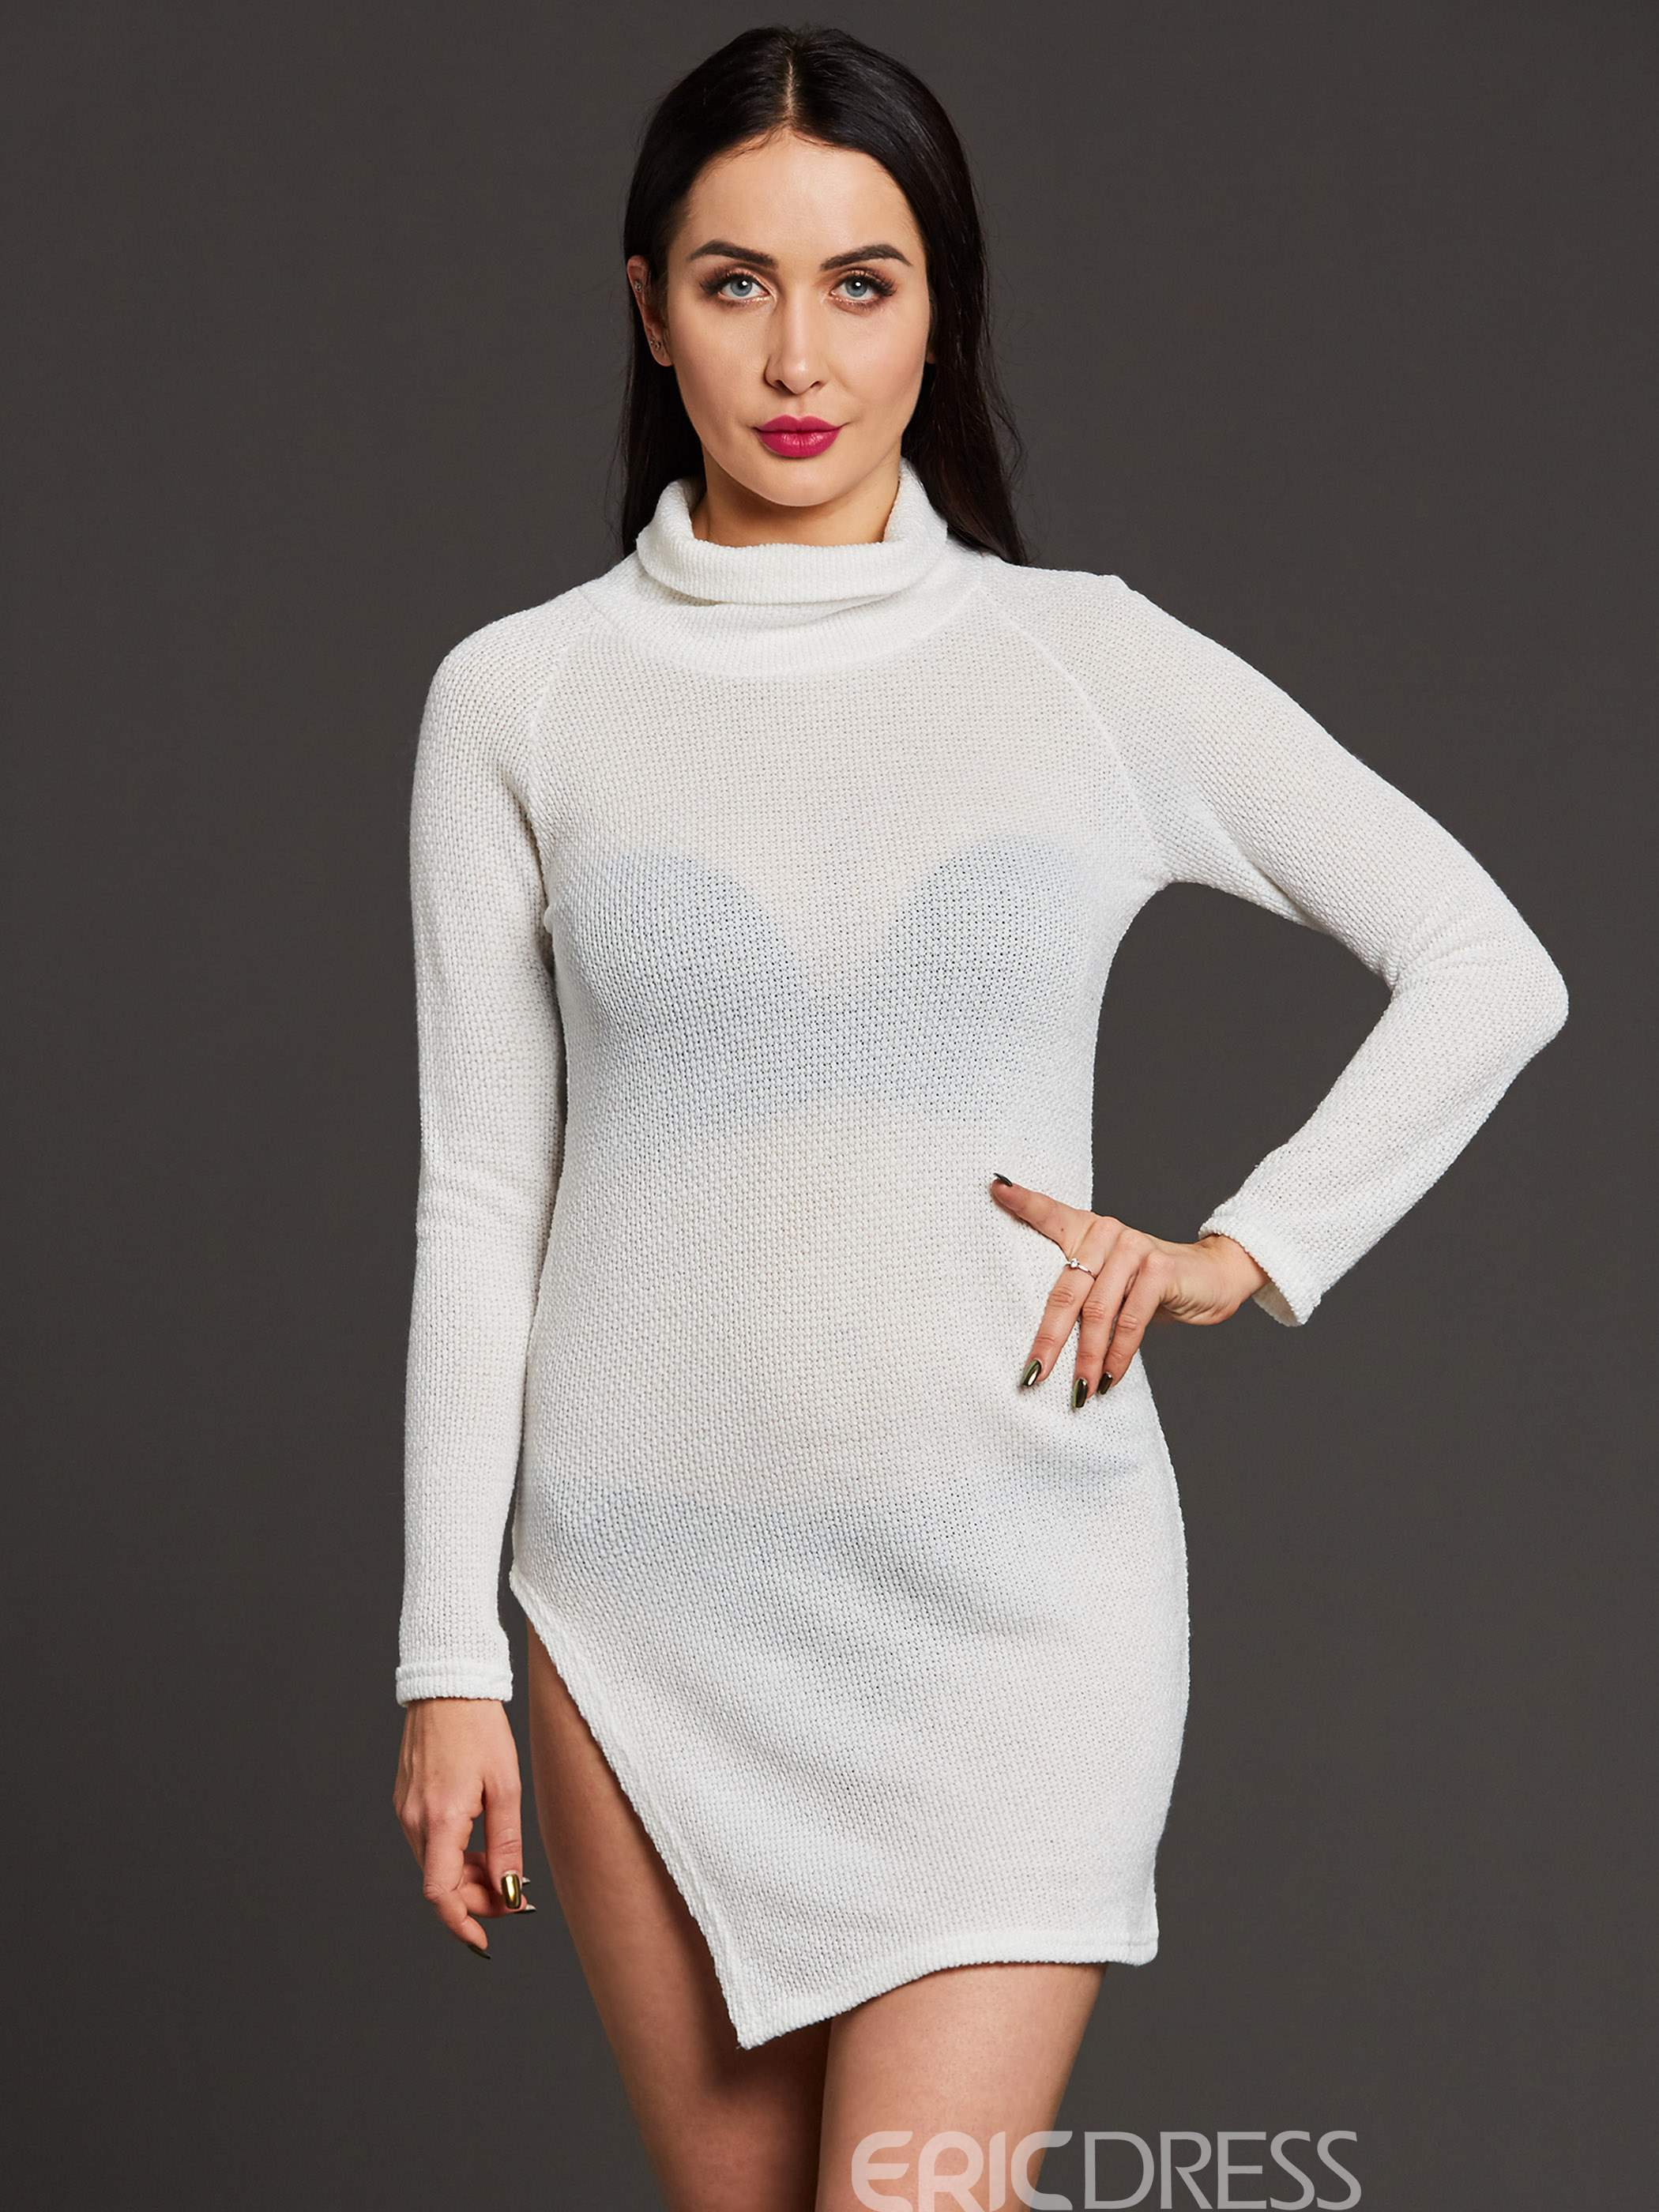 03434de128 Ericdress Plain High Neck Thread Long Sleeve Sweater Dress 12994985 ...